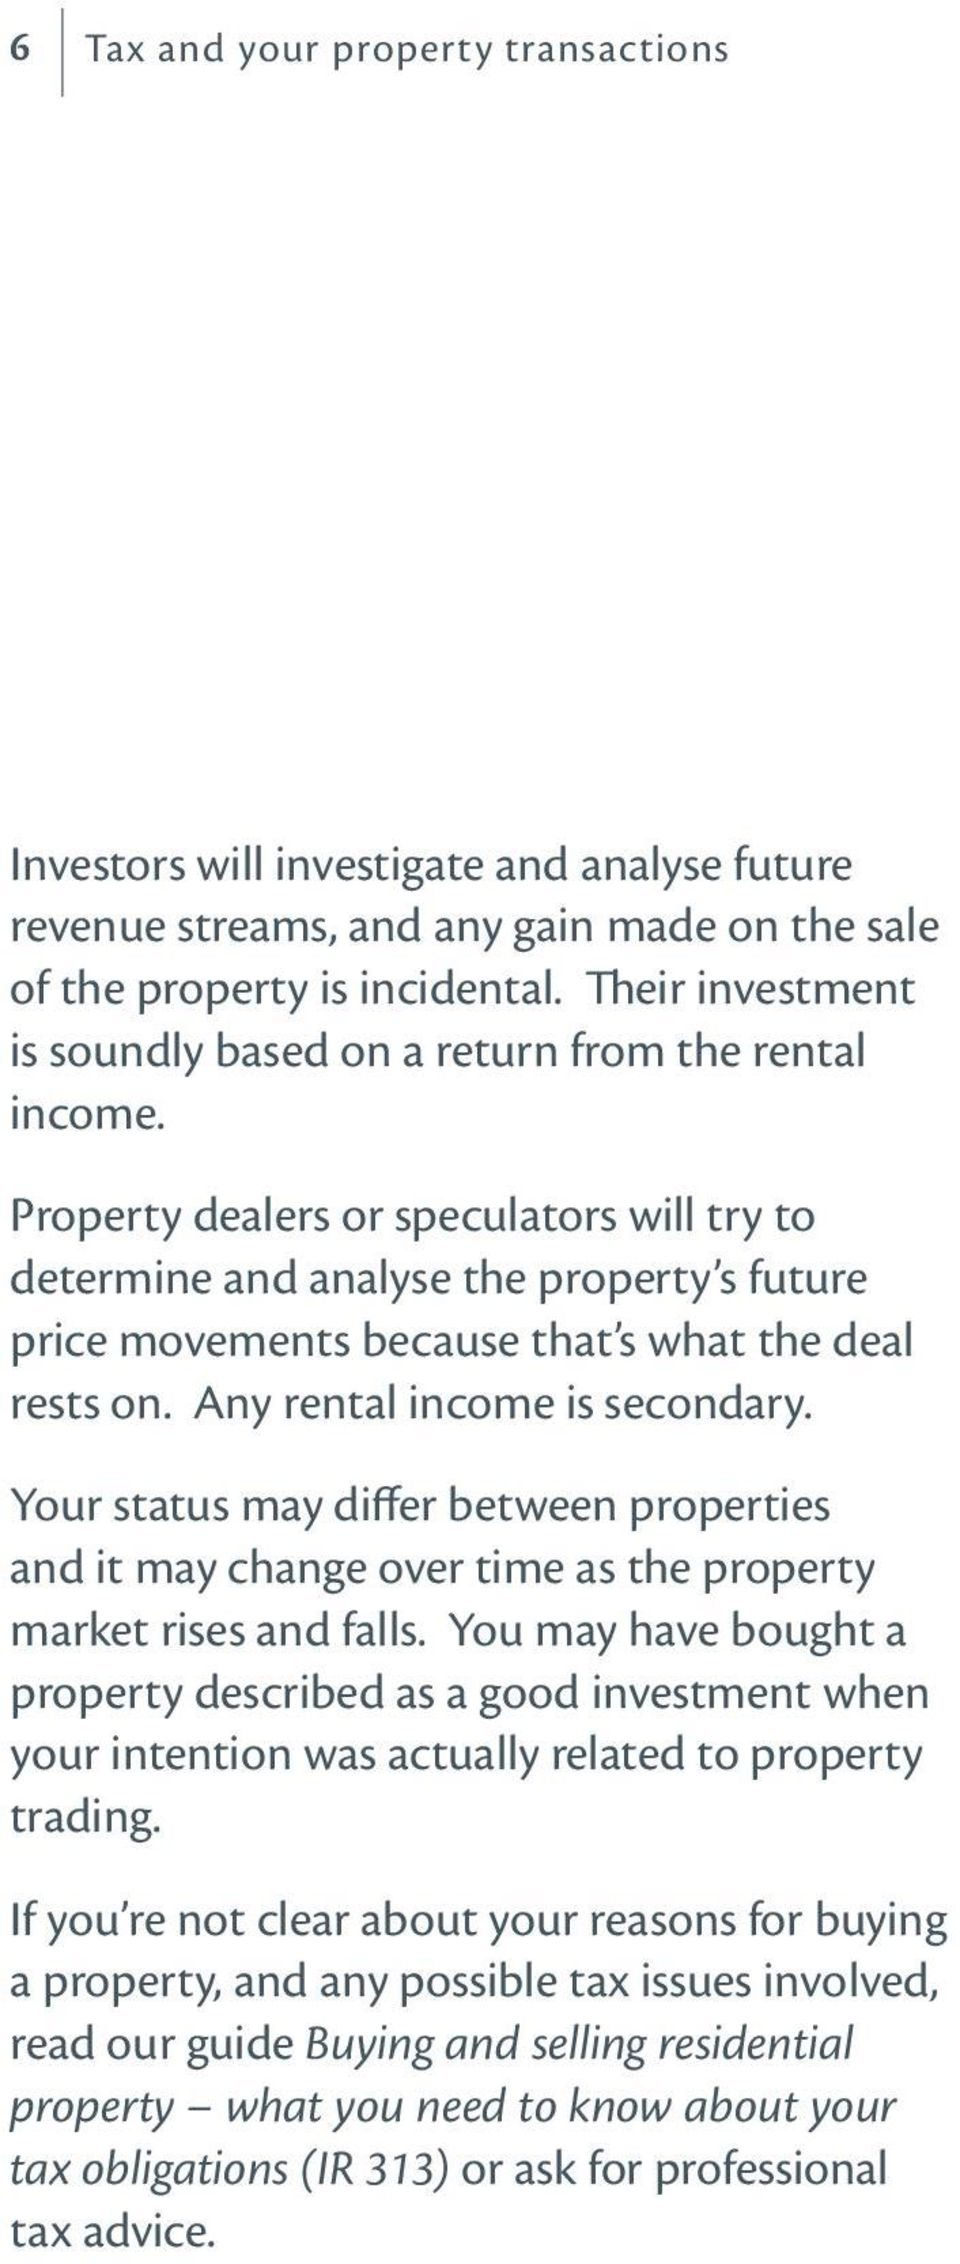 Property dealers or speculators will try to determine and analyse the property s future price movements because that s what the deal rests on. Any rental income is secondary.